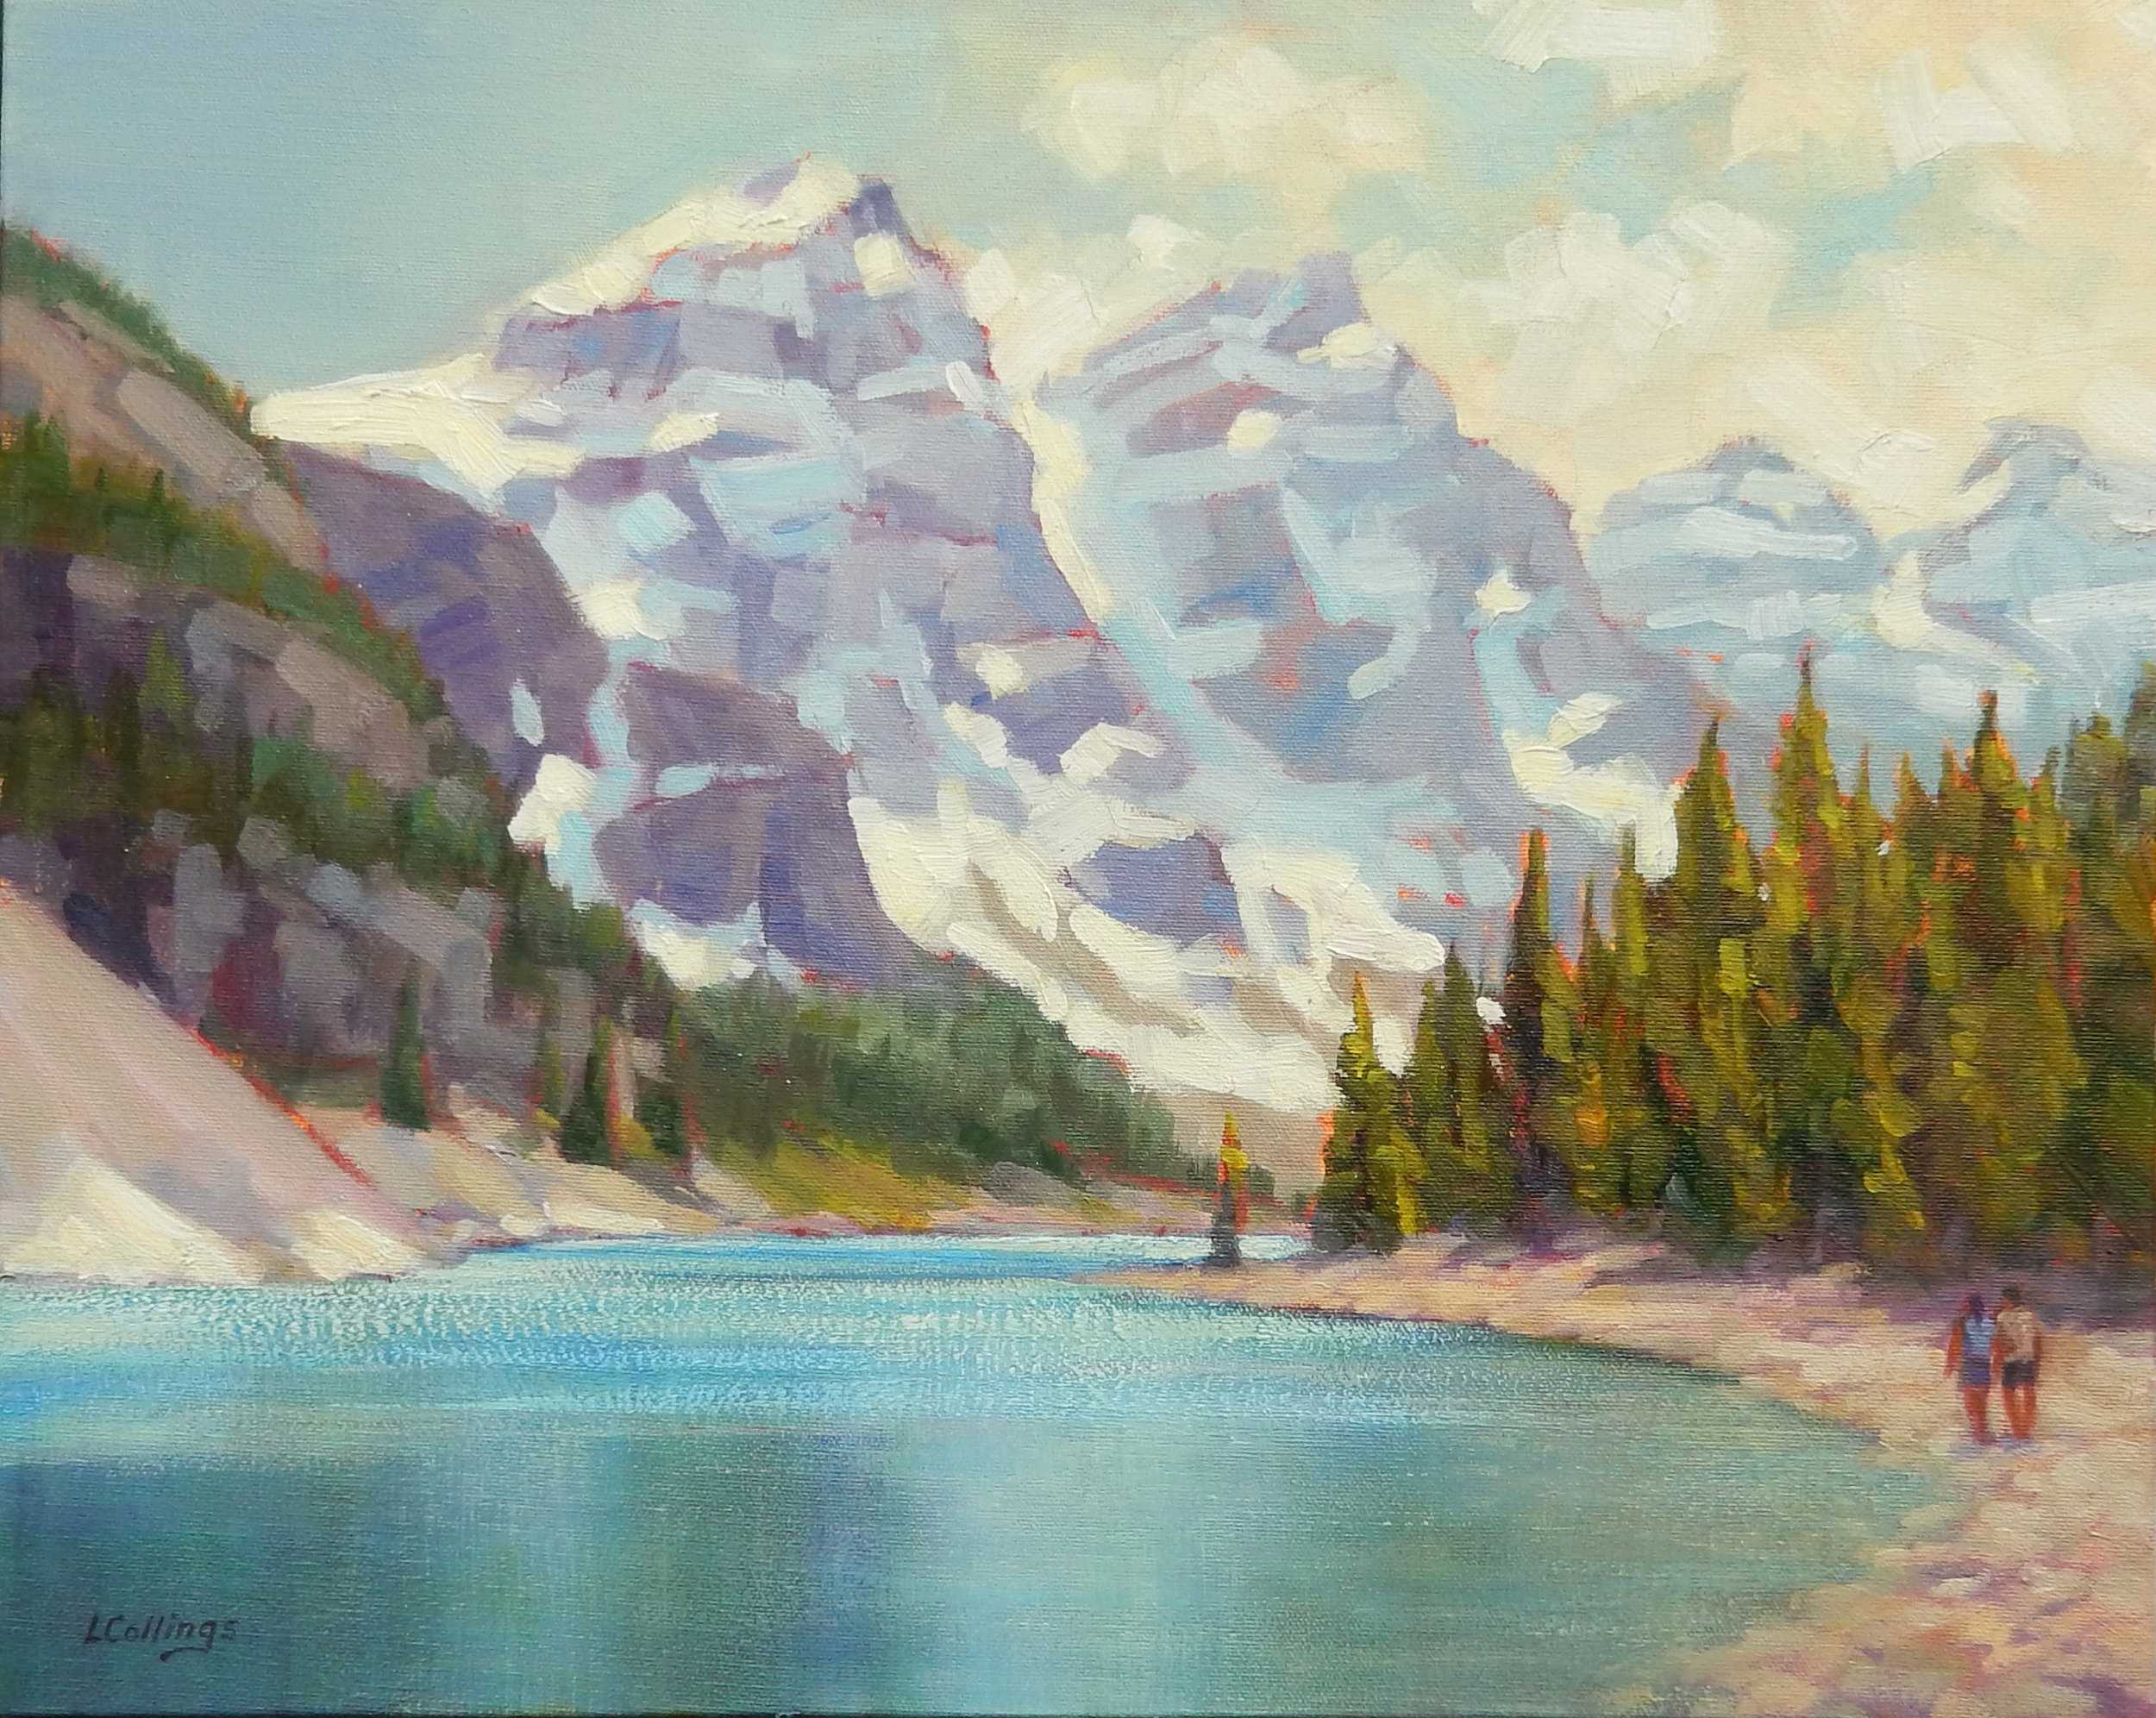 "4 - Moraine Lake - 16 x 20"", oil on canvas, $480-"